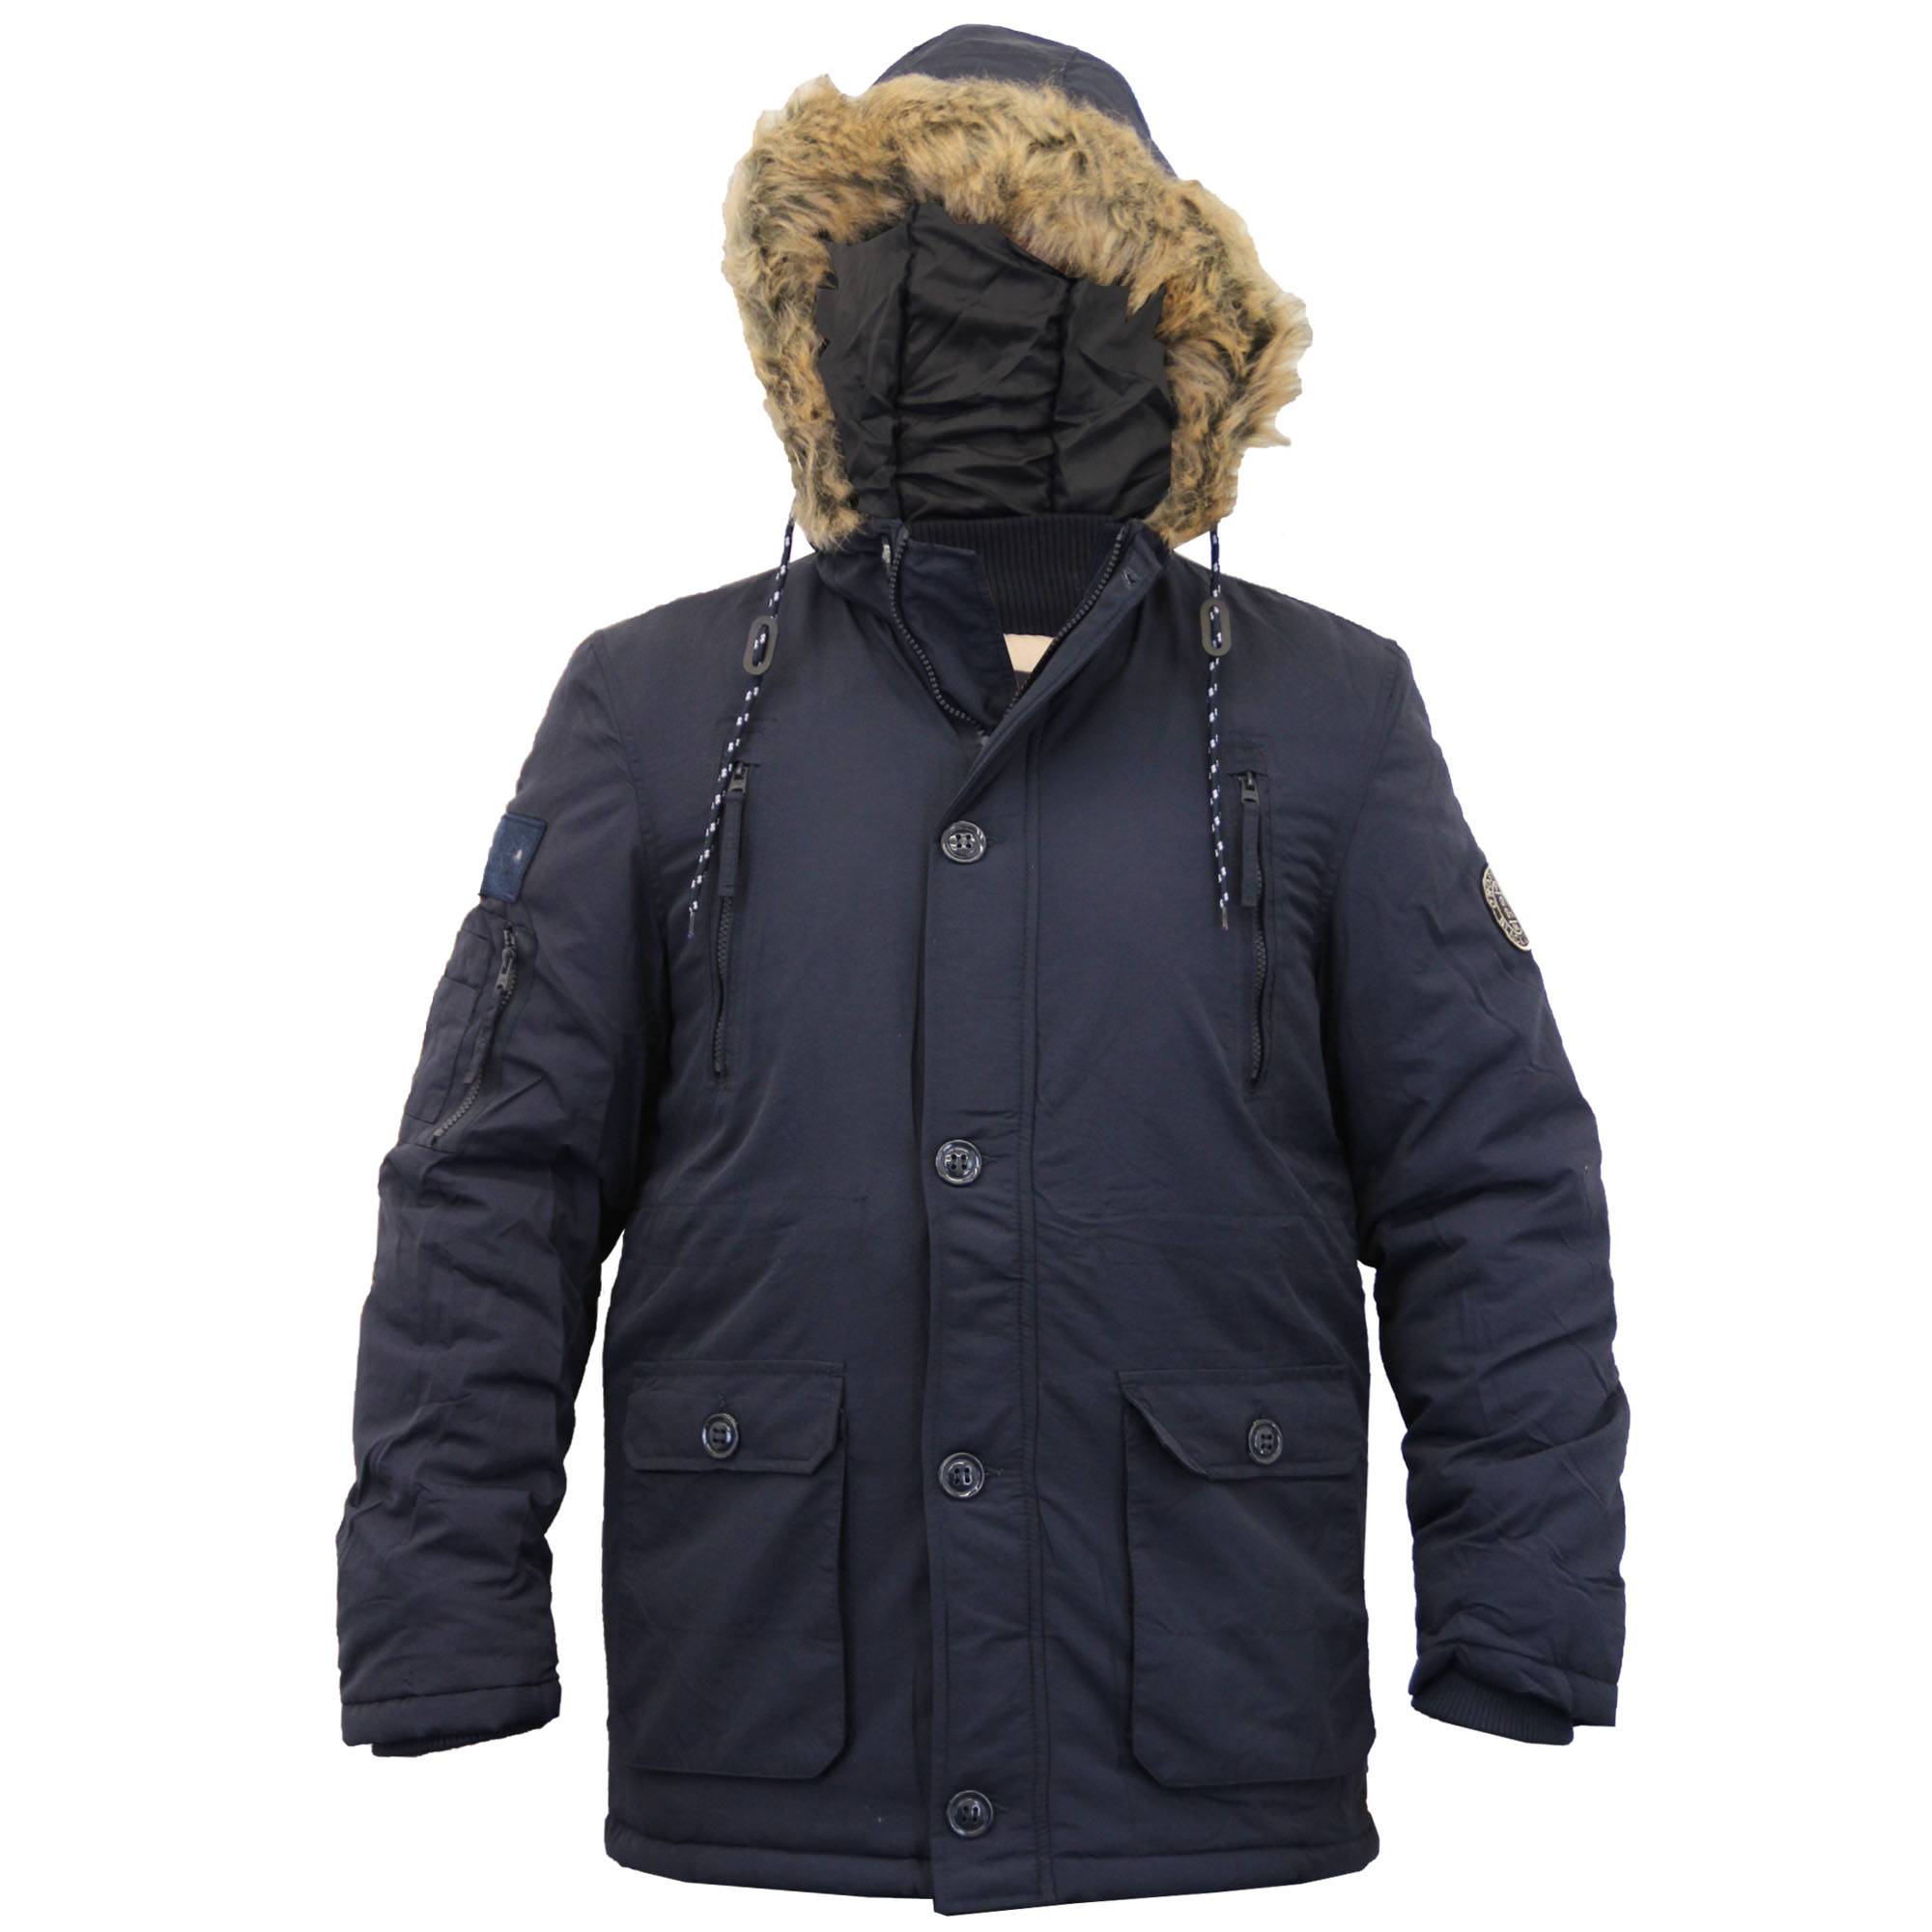 FLY HAWK Men's Hooded Thick Cotton Puffer Jacket Winter Quilted Snorkel Parka with Detachable Faux Fur Collar Anorak Coat by FLY HAWK $ - $ $ 59 99 - $ 65 99 Prime.